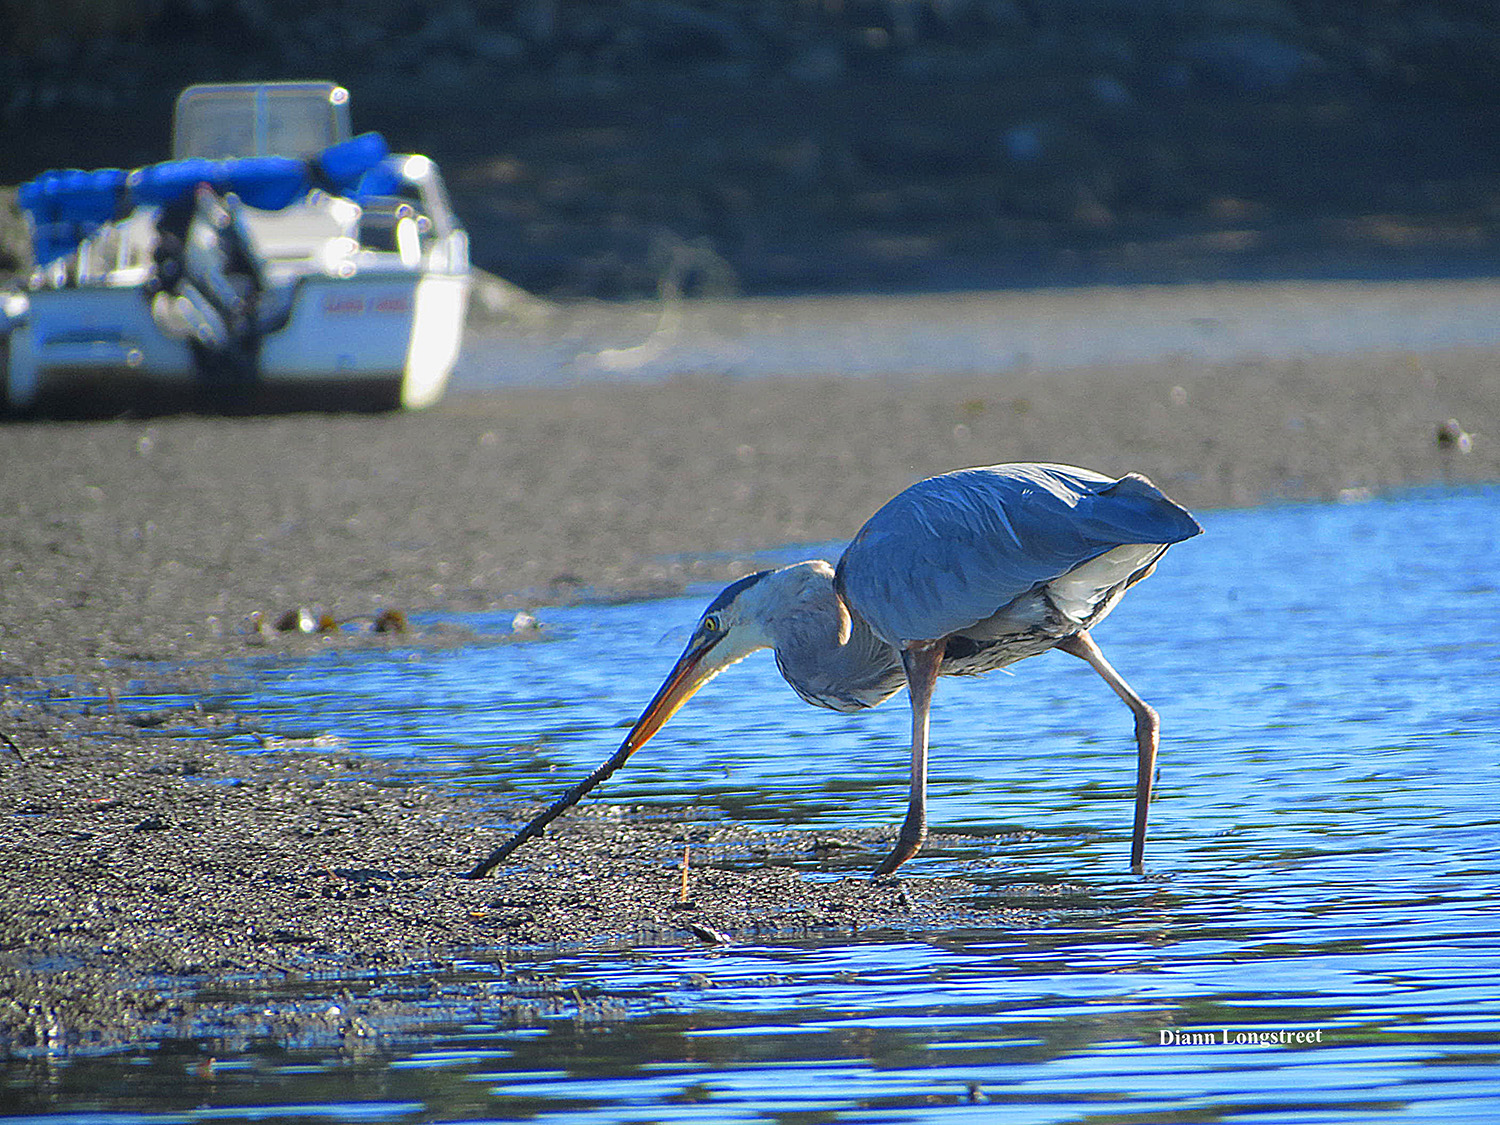 The second mouse might get the cheese but the early bird – in this case a blue heron – gets at least something that resembles a worm at Robinhood Cove, where Georgetown's Diann Longstreet observed from a kayak.